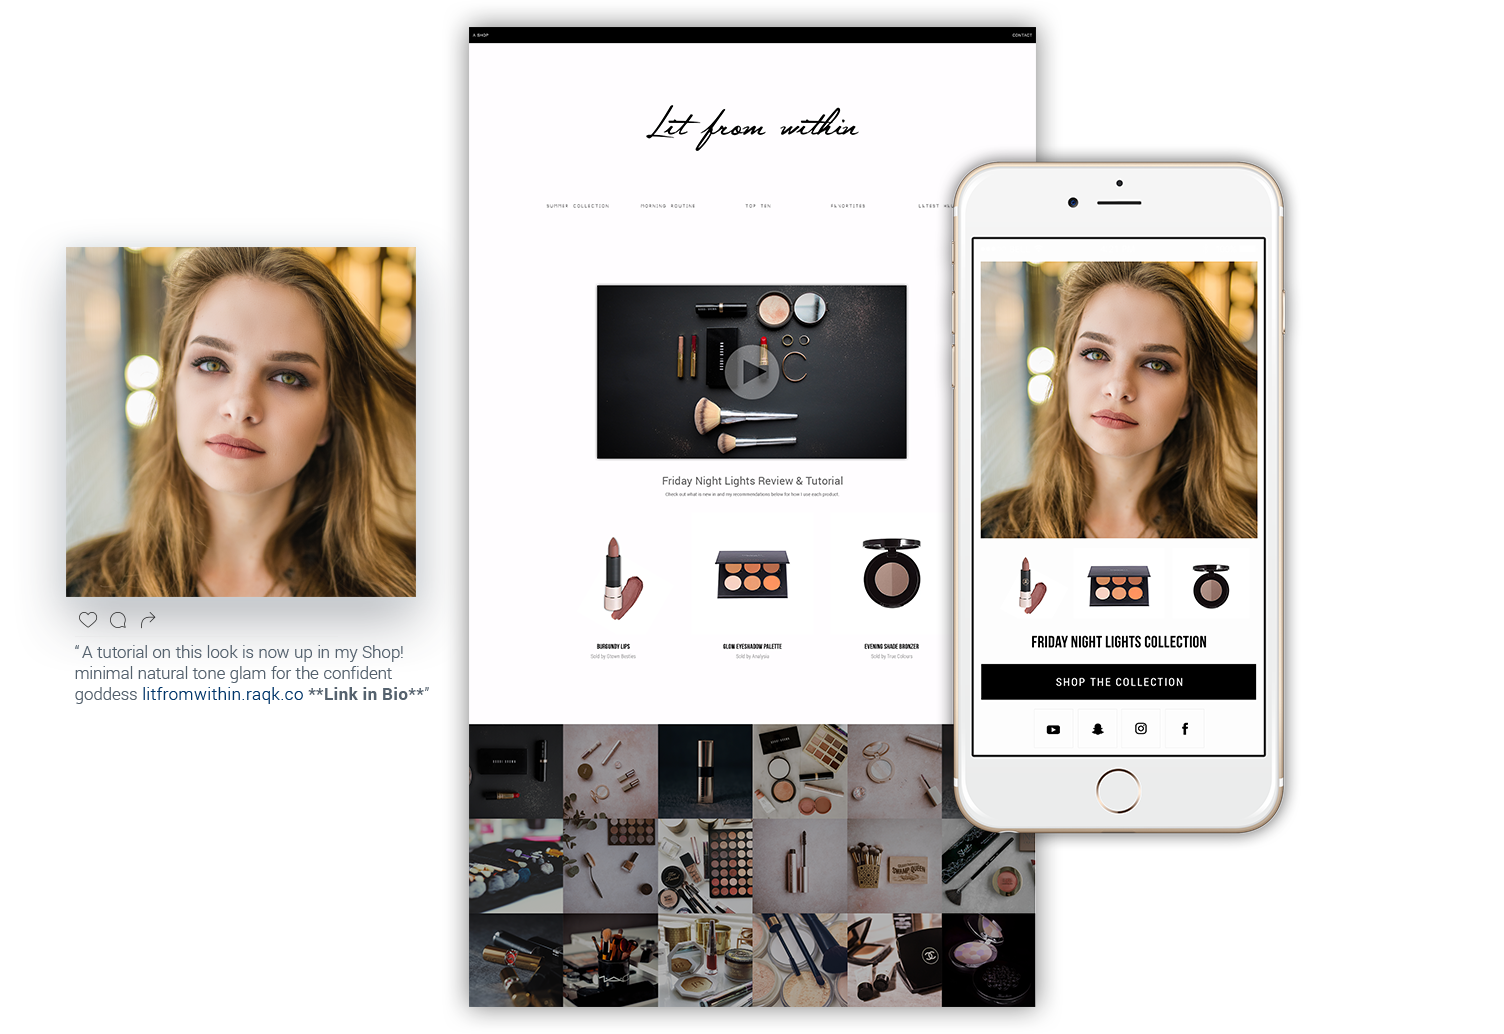 shops built for Influencers, Publishers, Creators & Vloggers